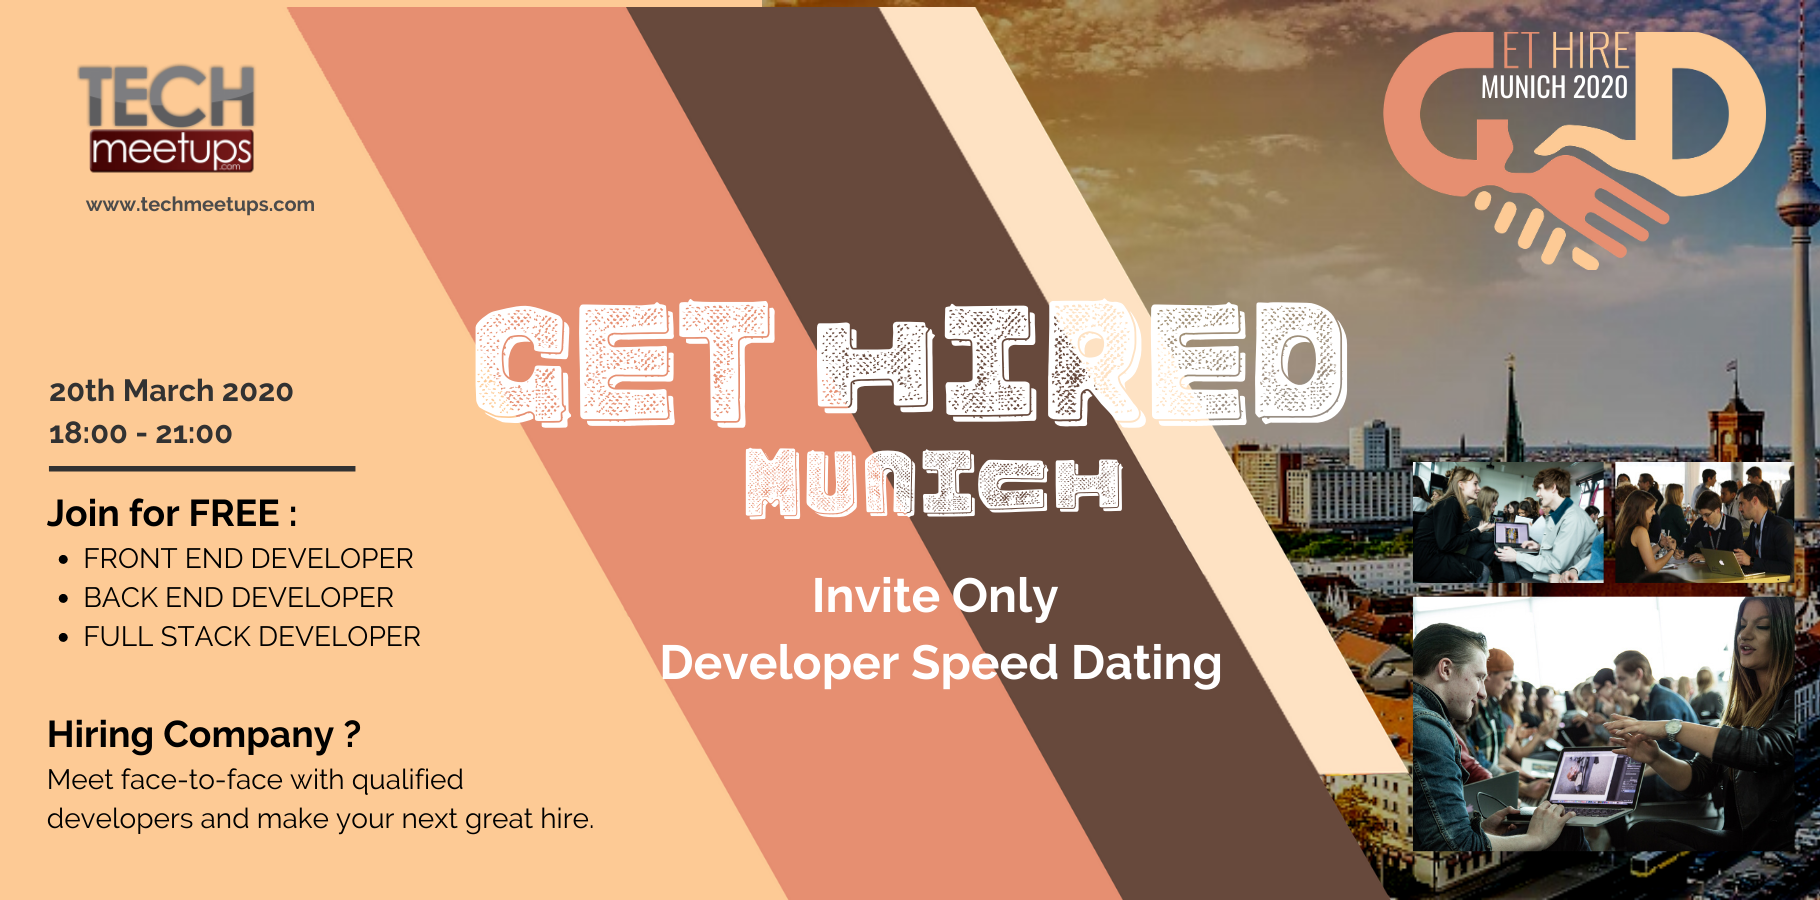 Tech speed dating